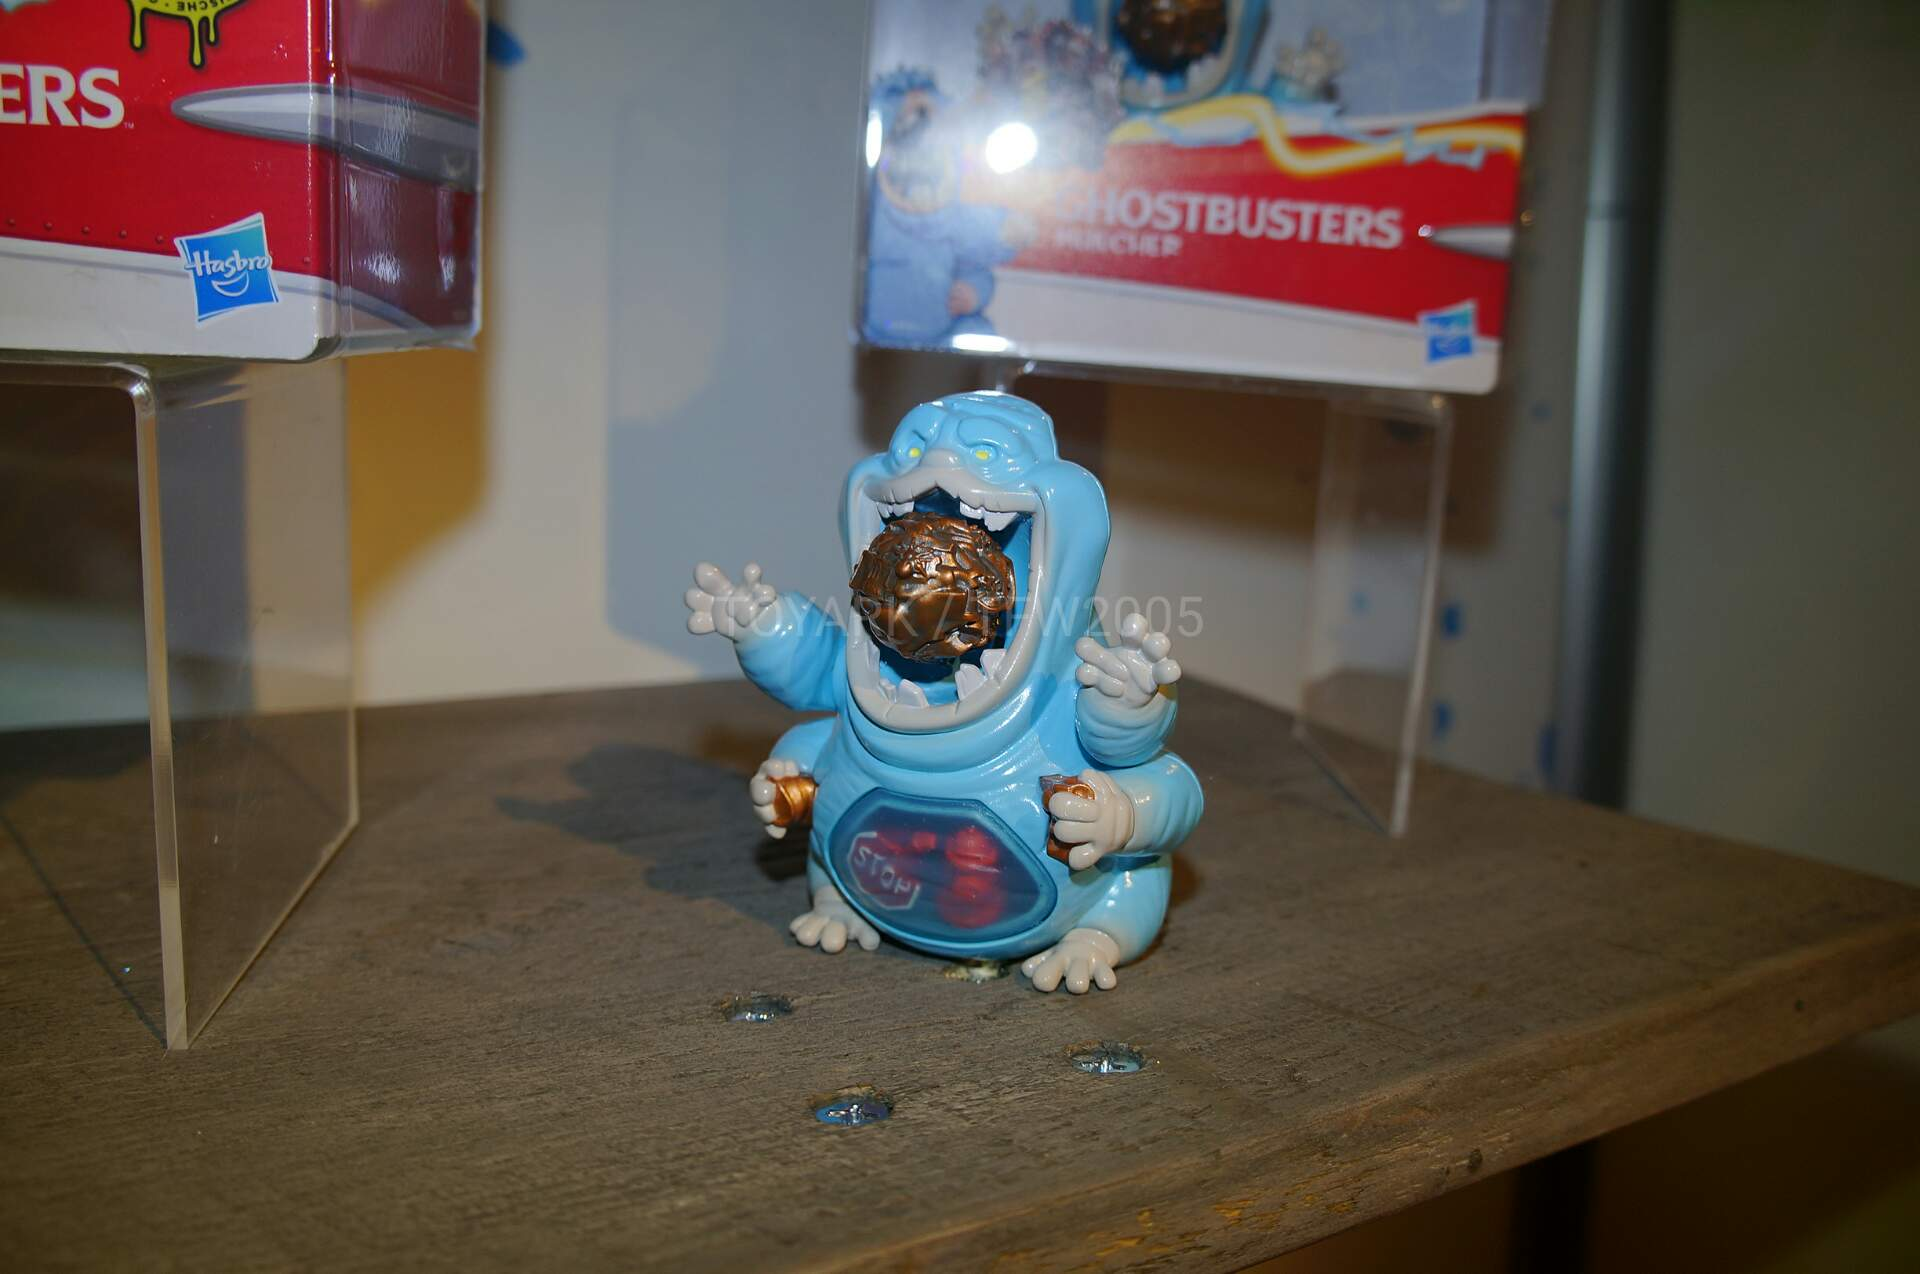 Toy-Fair-2020-Hasbro-Ghostbusters-052.jpg